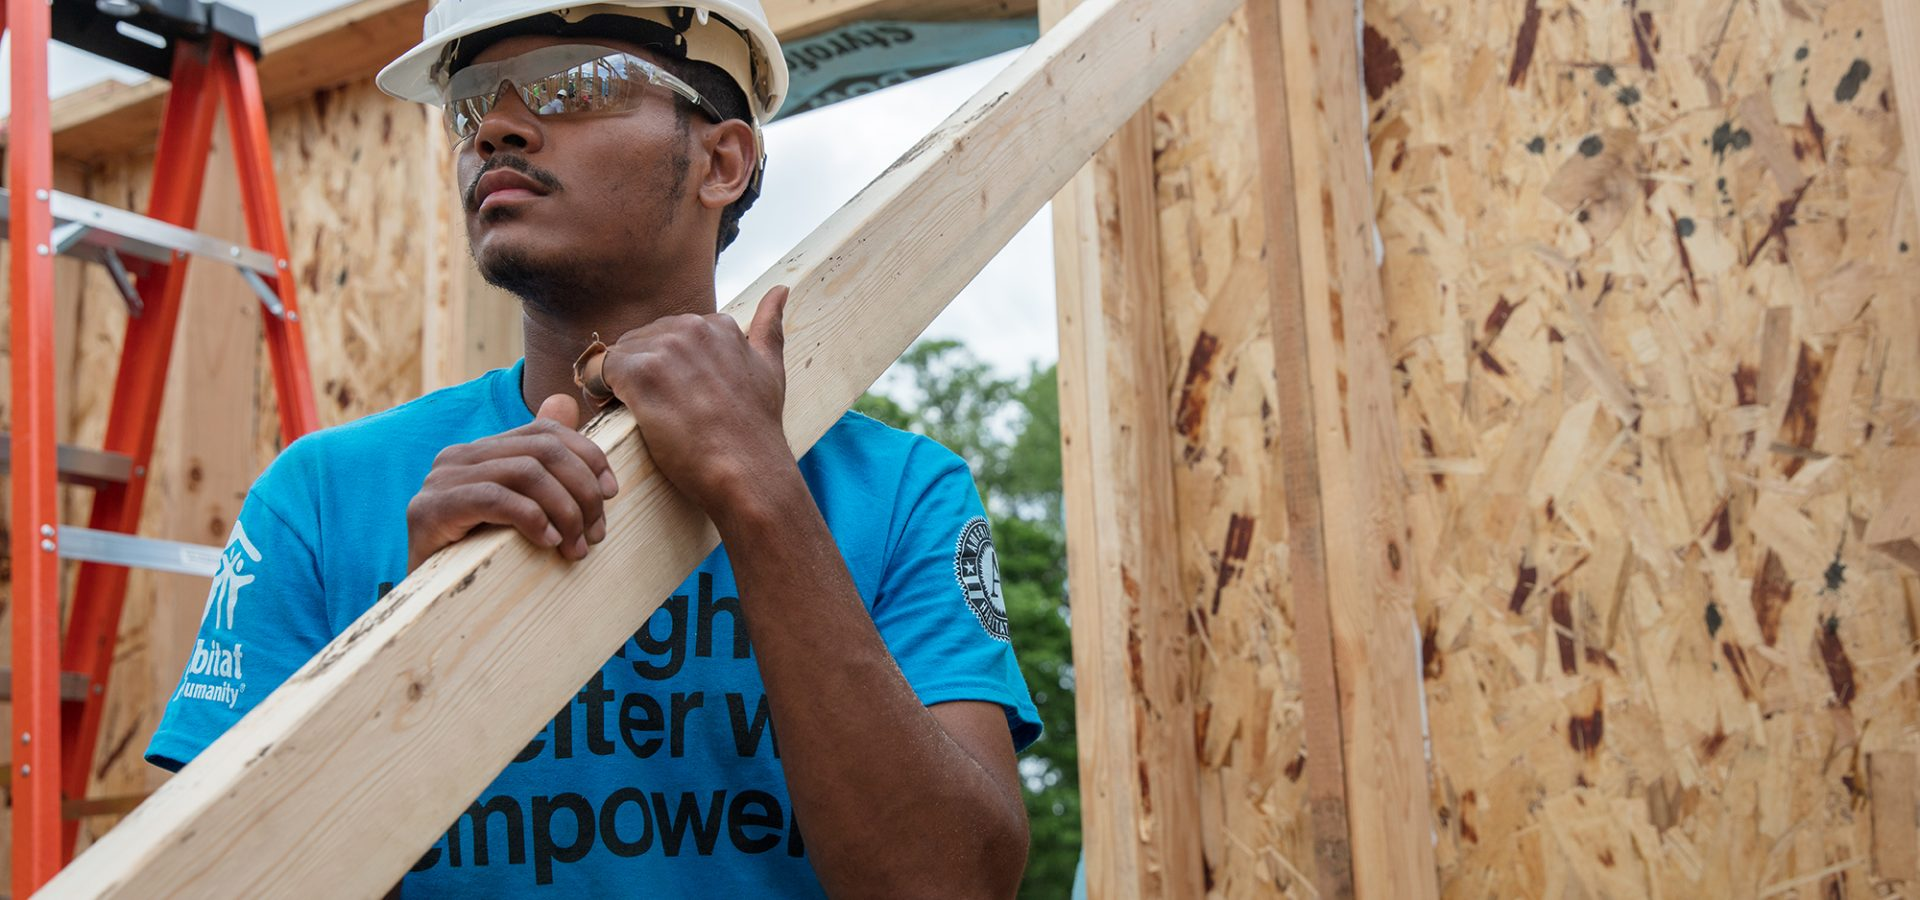 DES MOINES, IOWA, USA (05/16/17)- Teryon Smith, an AmeriCorps member, during Habitat for Humanity's AmeriCorps Build-a-Thon in Des Moines, Iowa. ©Habitat for Humanity International/Jason Asteros